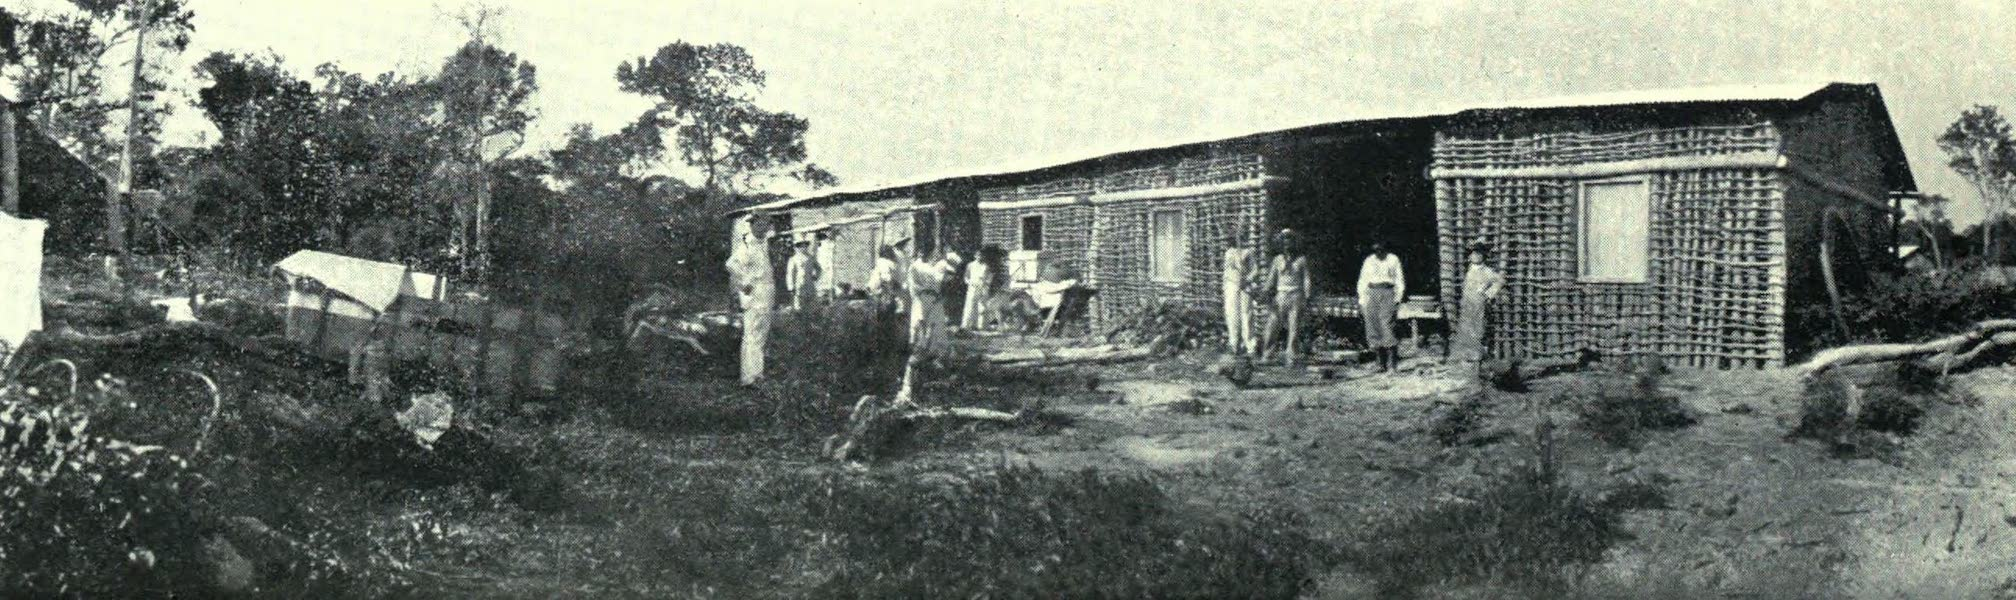 Paraguay by Henry Koebel - A Pioneer Factory (1917)